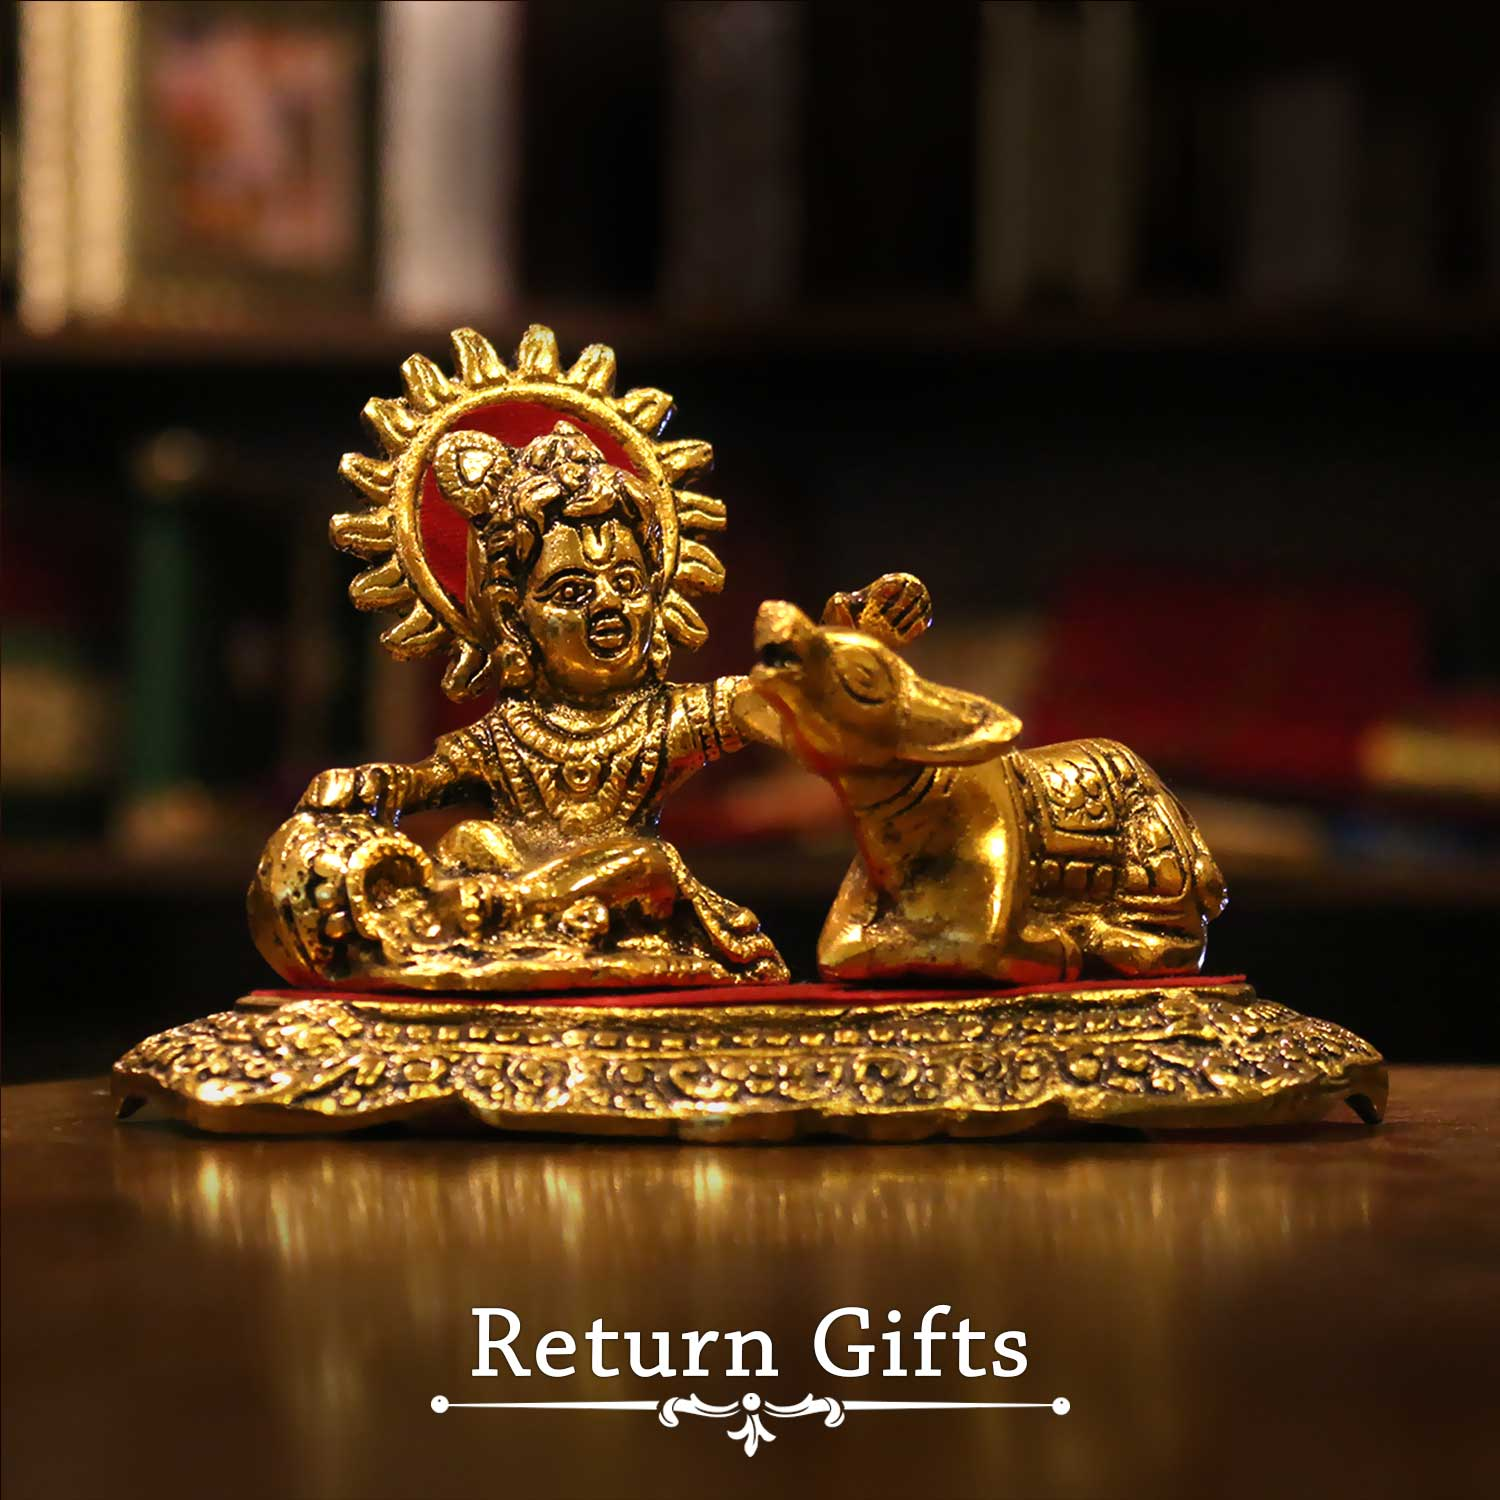 Return Gifts For Guests In Indian Wedding: Return Gifts For Wedding, Birthday And More